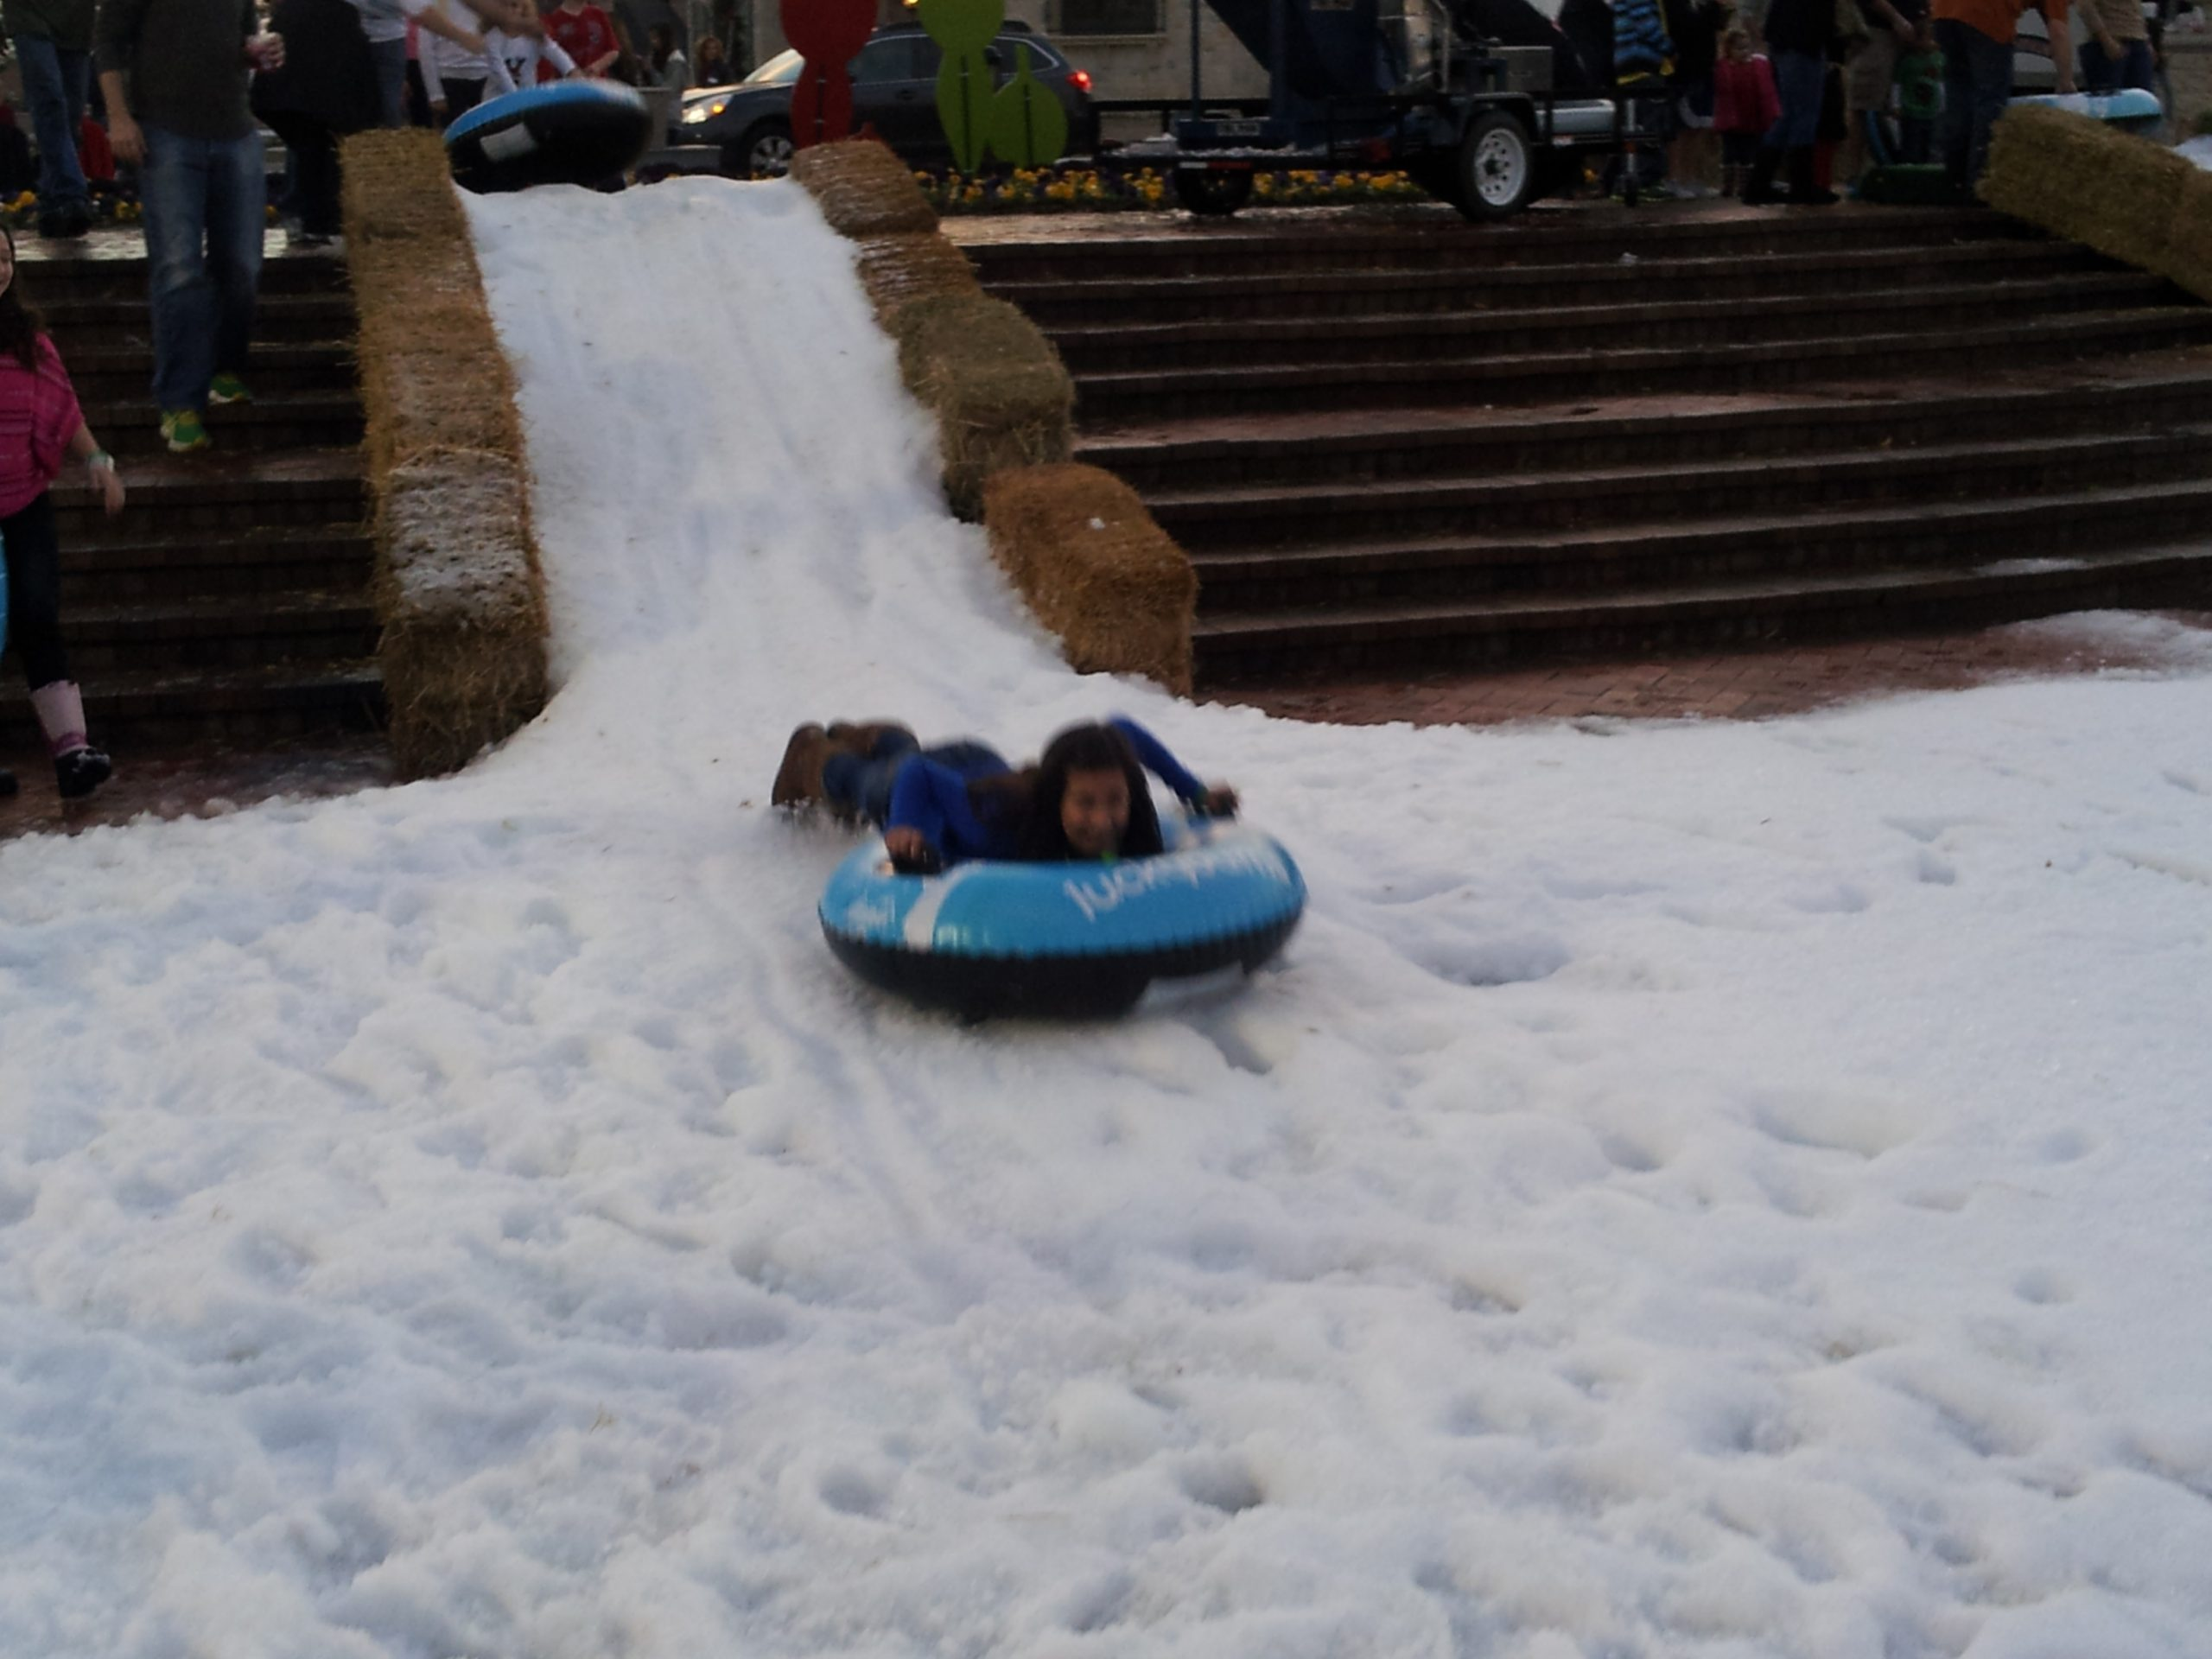 Snow tubing in Texas